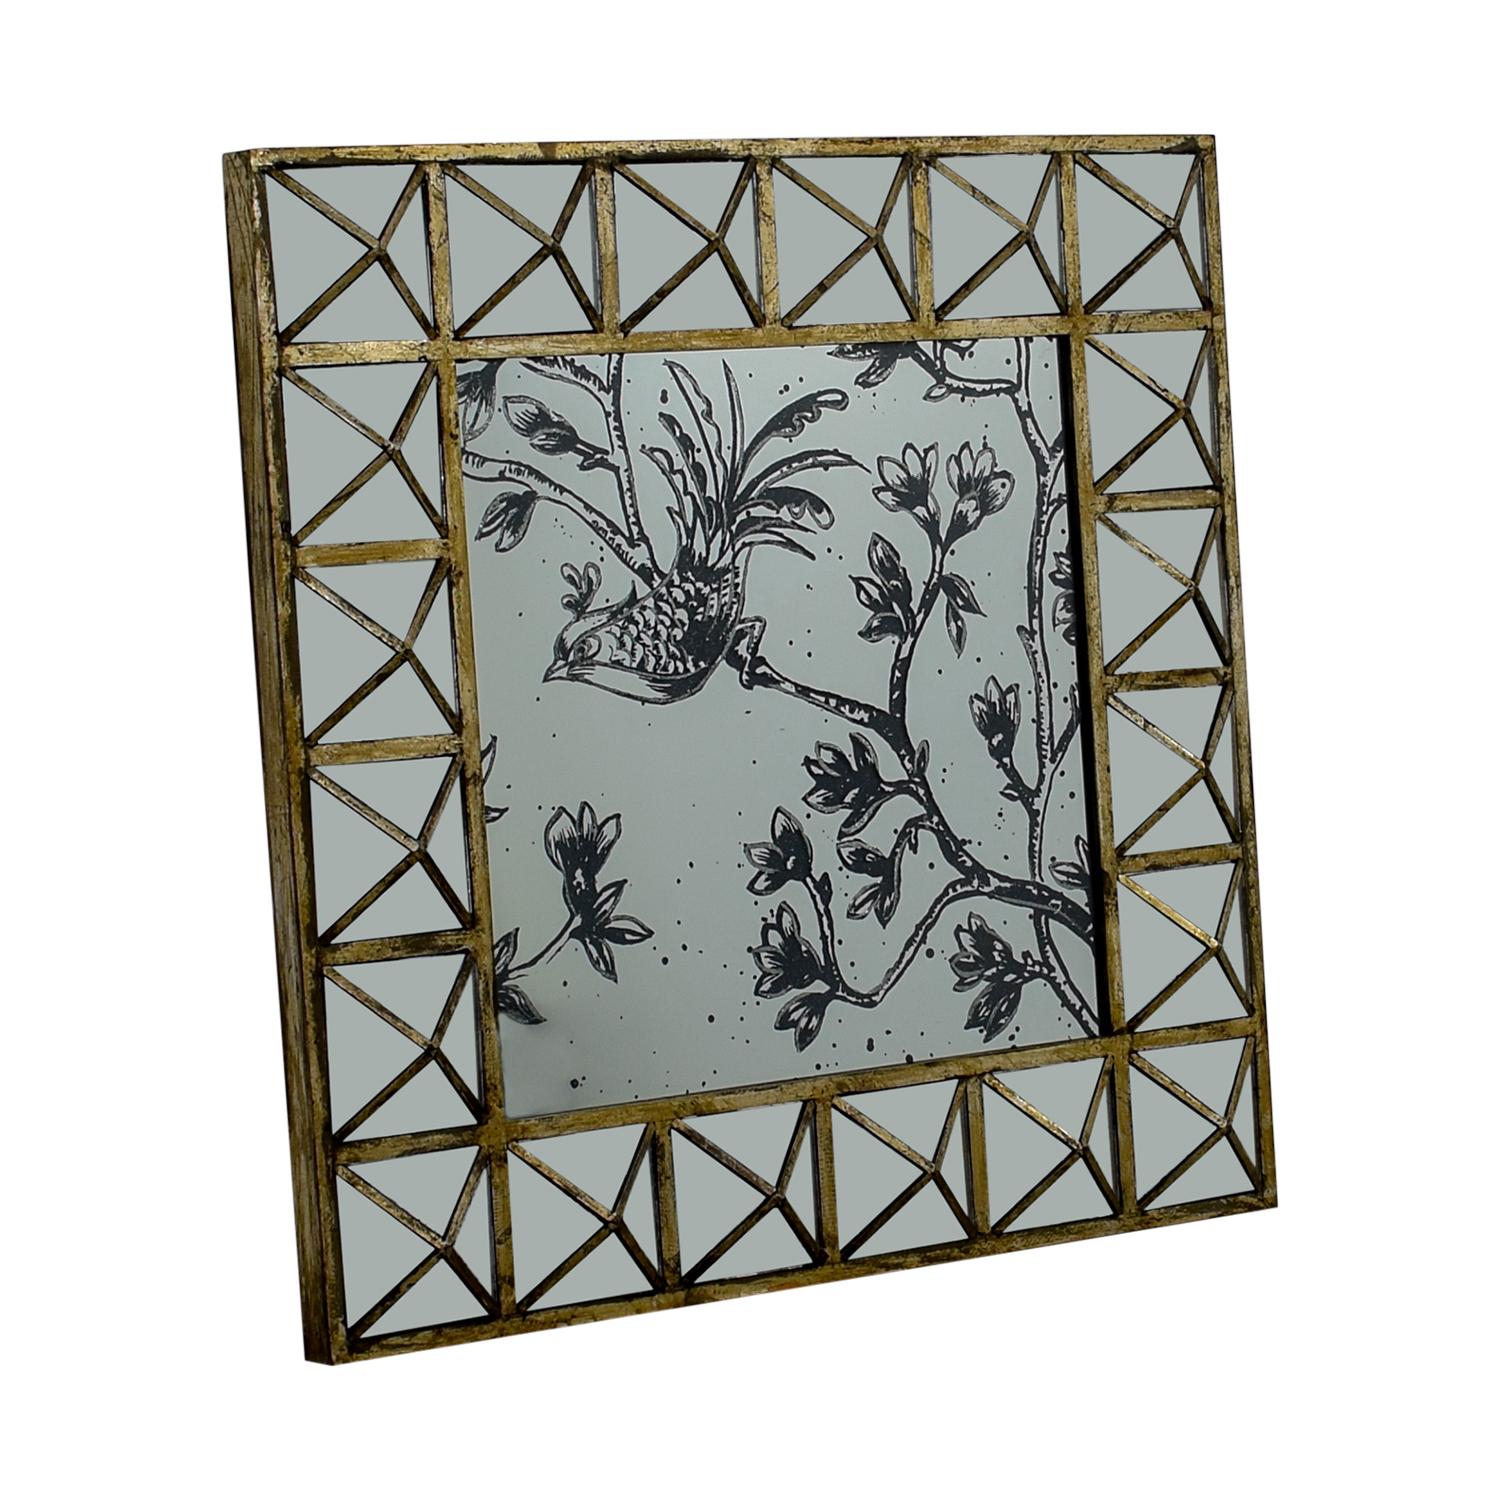 HomeGoods HomeGoods Etched Decorative Mirror dimensions